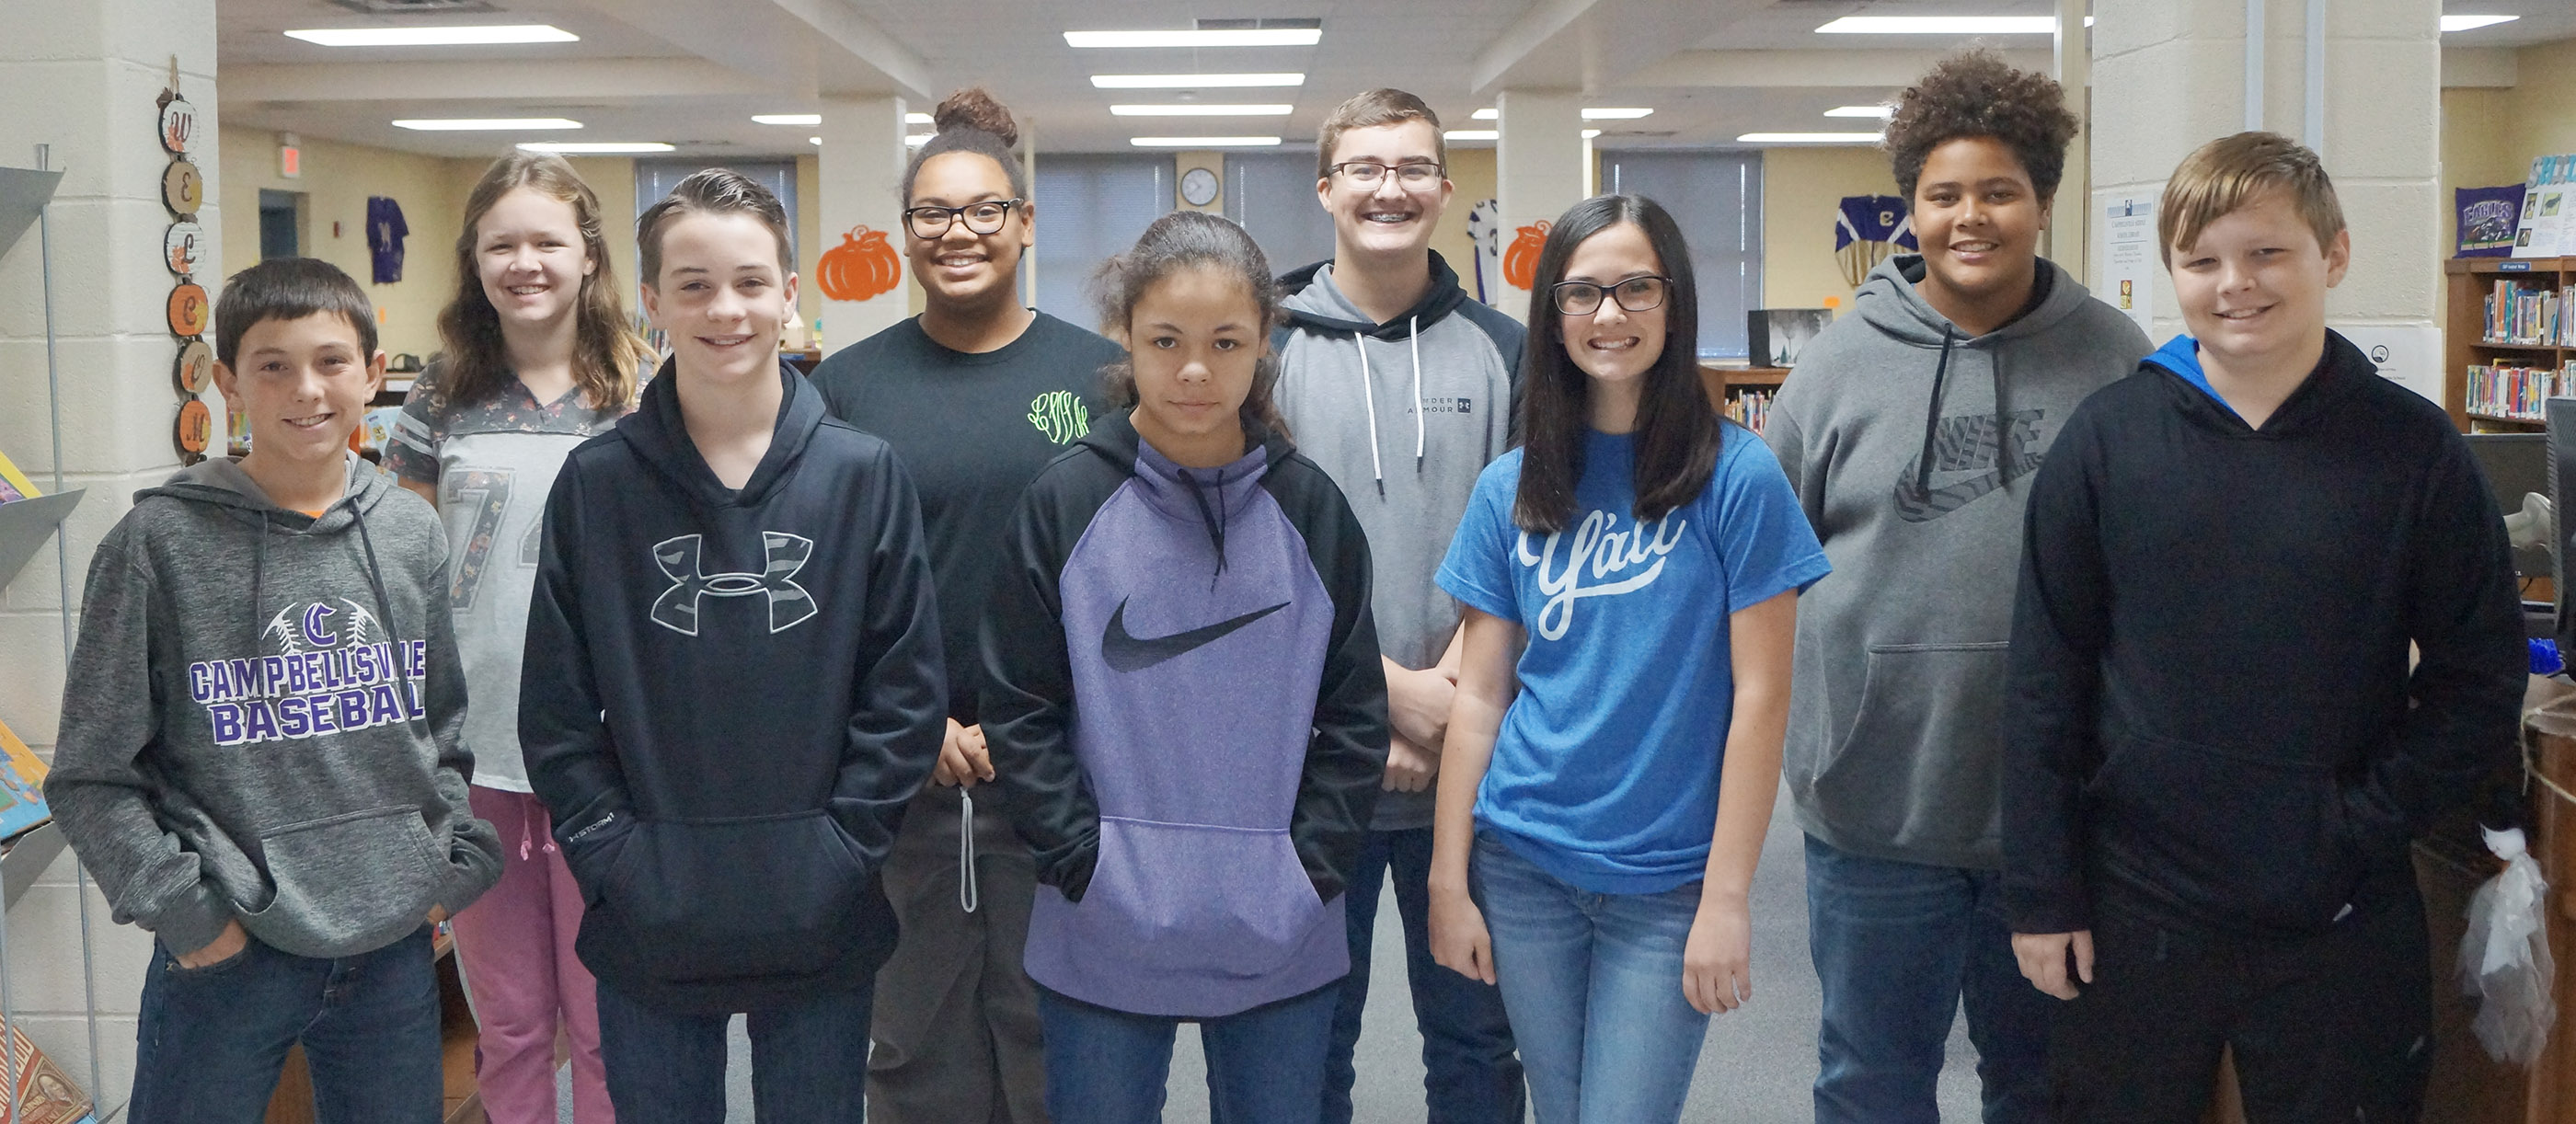 From left, front, are eighth-grader Dakota Harris, seventh-grader Sean Mings, sixth-grader Jayla Penn, eighth-grader Sarah Adkins and sixth-grader Hunter Falls. Back, seventh-grader McCayla Falls, eighth-grader Brae Washington, seventh-grader Connor Byrd and eighth-grader Brandon Pittman. Not pictured are sixth-graders Diego Noyola and Chloe Mitchell and seventh-grader Briana Davis.